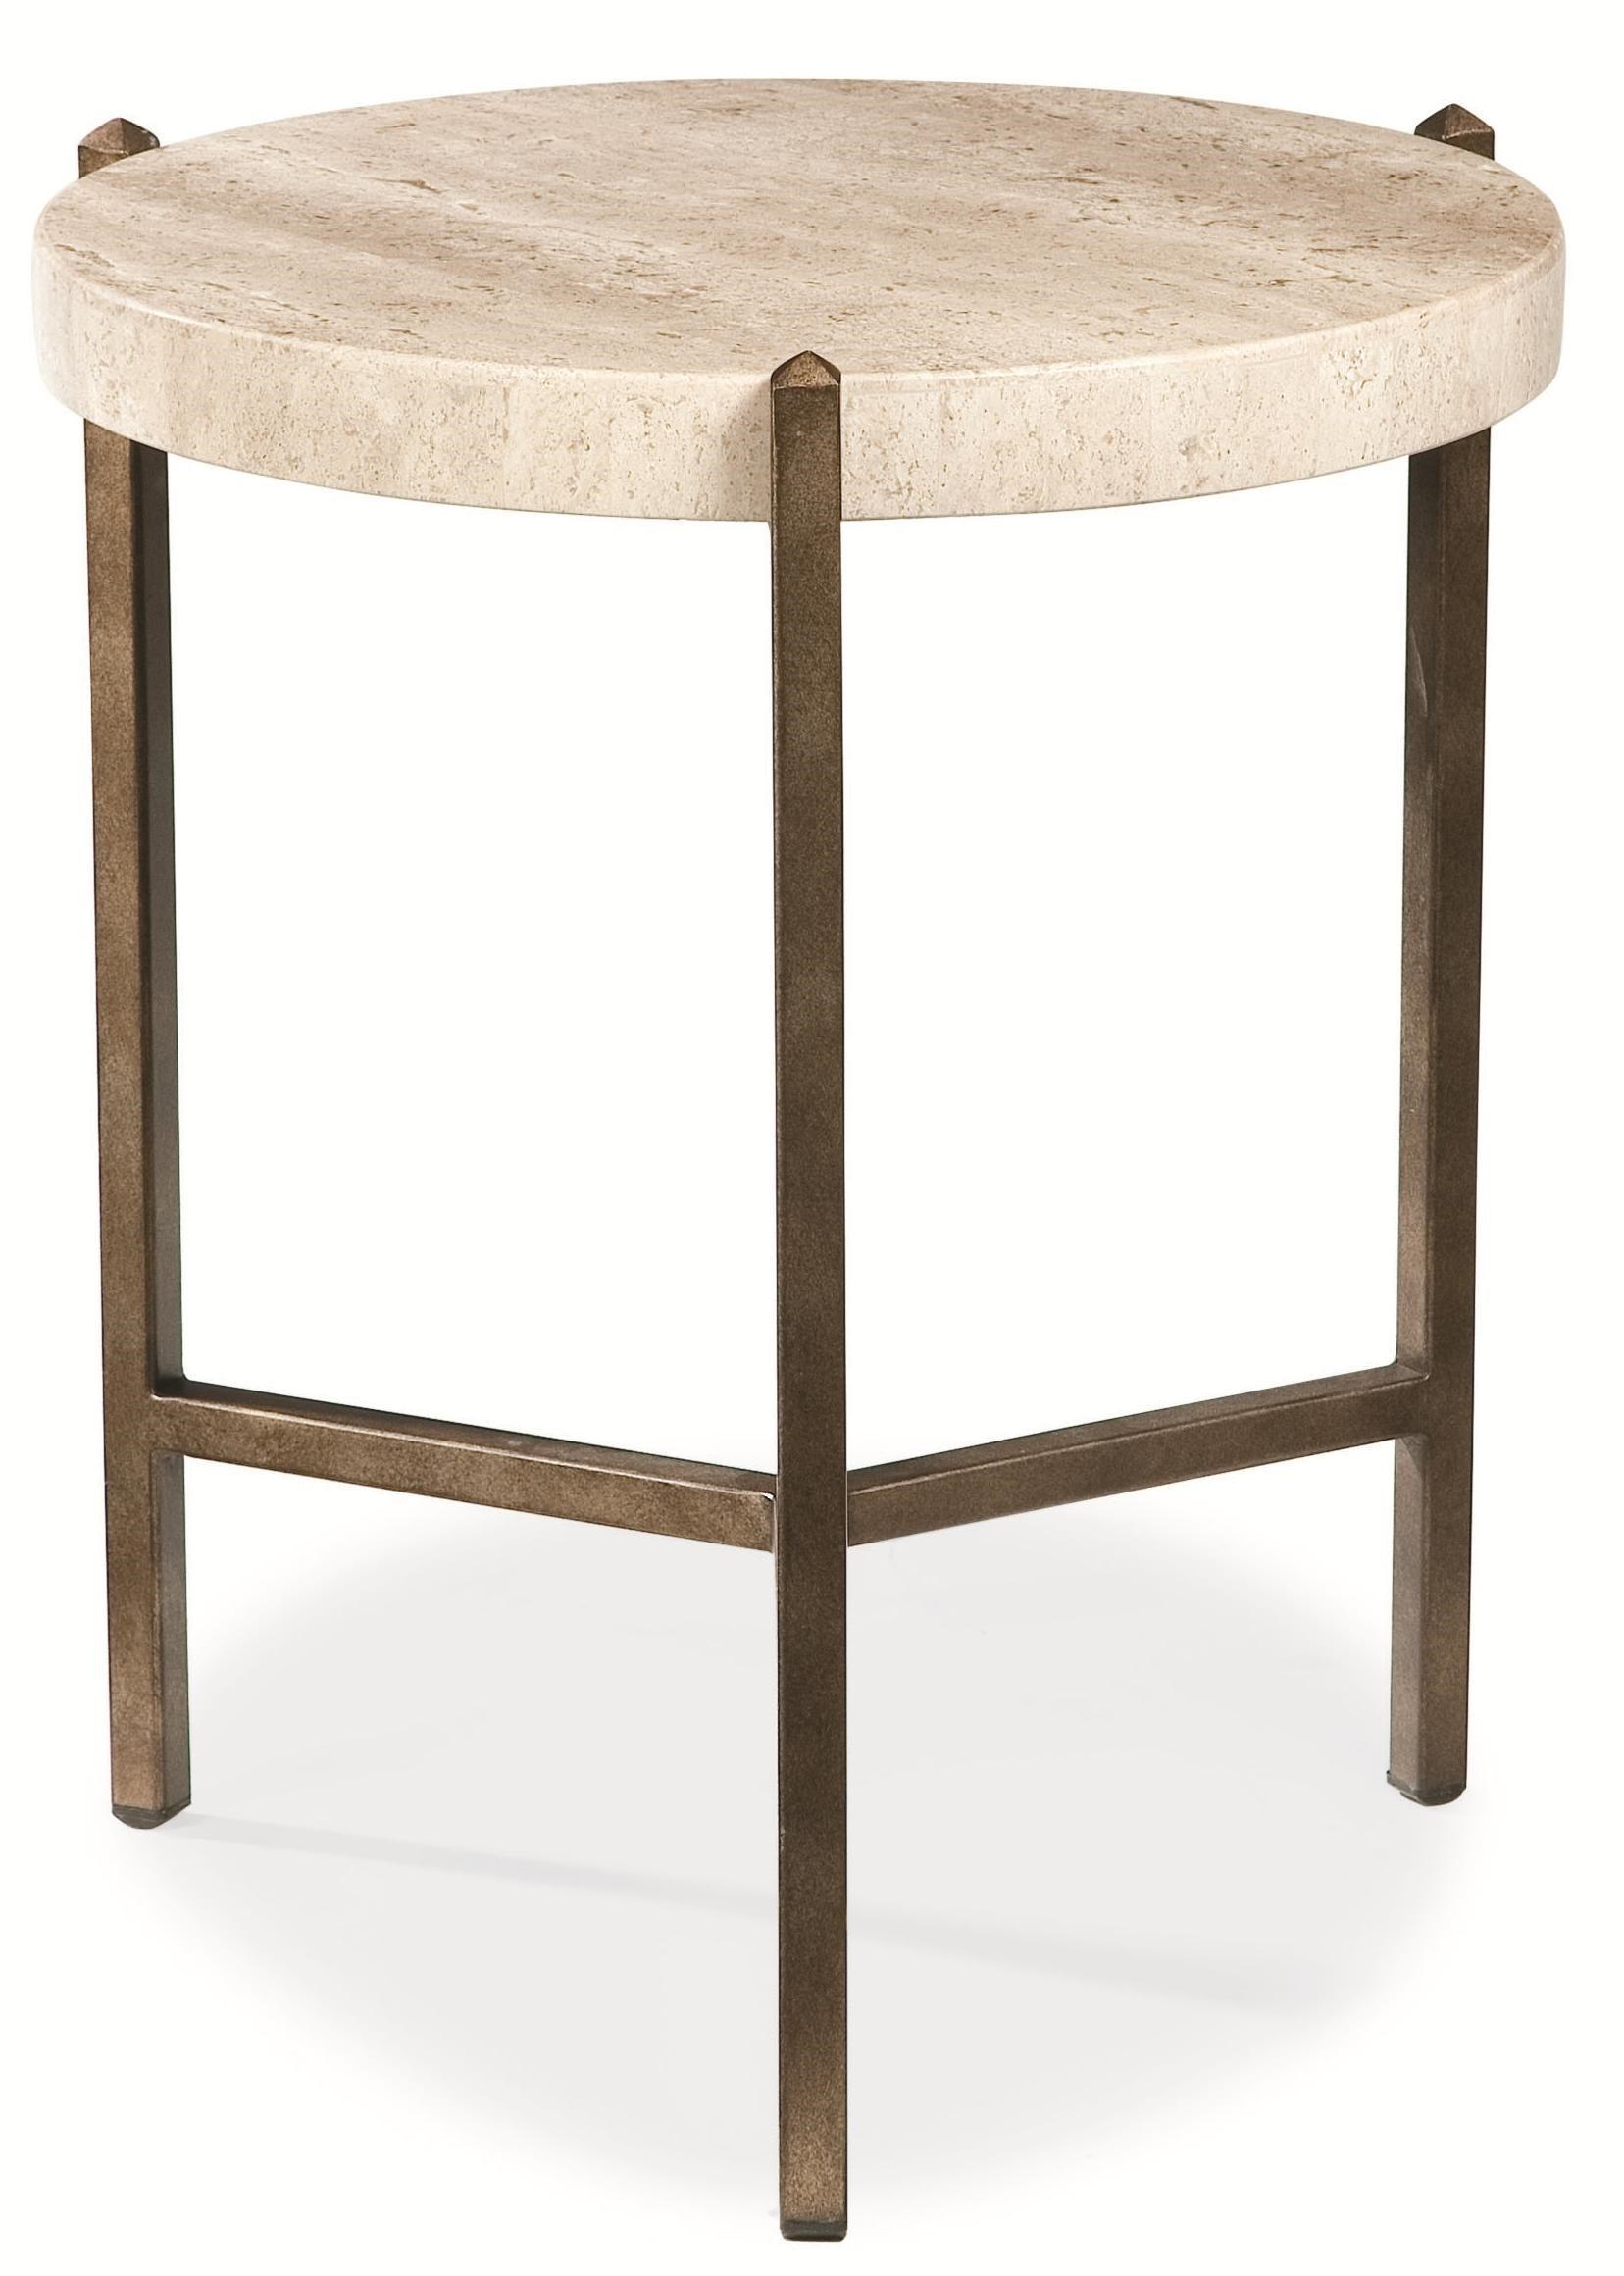 Elegant Thomasville® Cachet Round Lamp Table W/ Travertine Stone Top   Dunk U0026  Bright Furniture   End Table